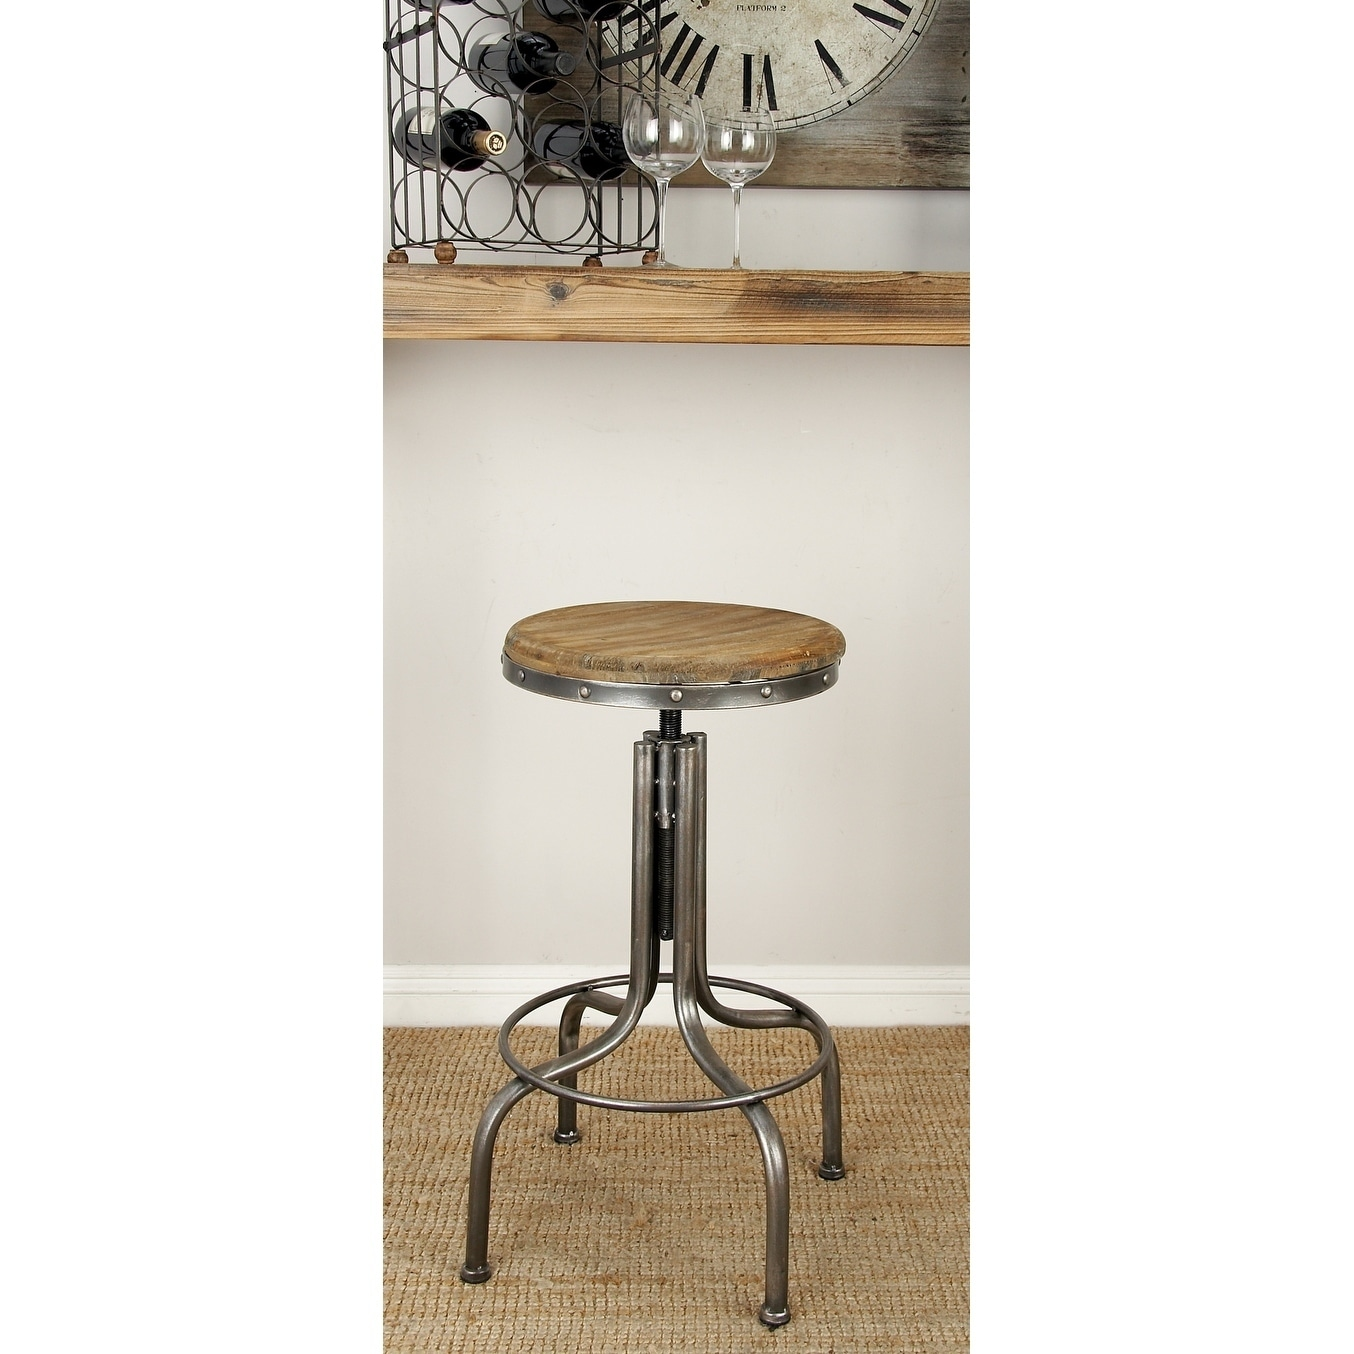 28 Inch Wood And Iron Bar Stool By Studio 350 Free Shipping Today 9118549